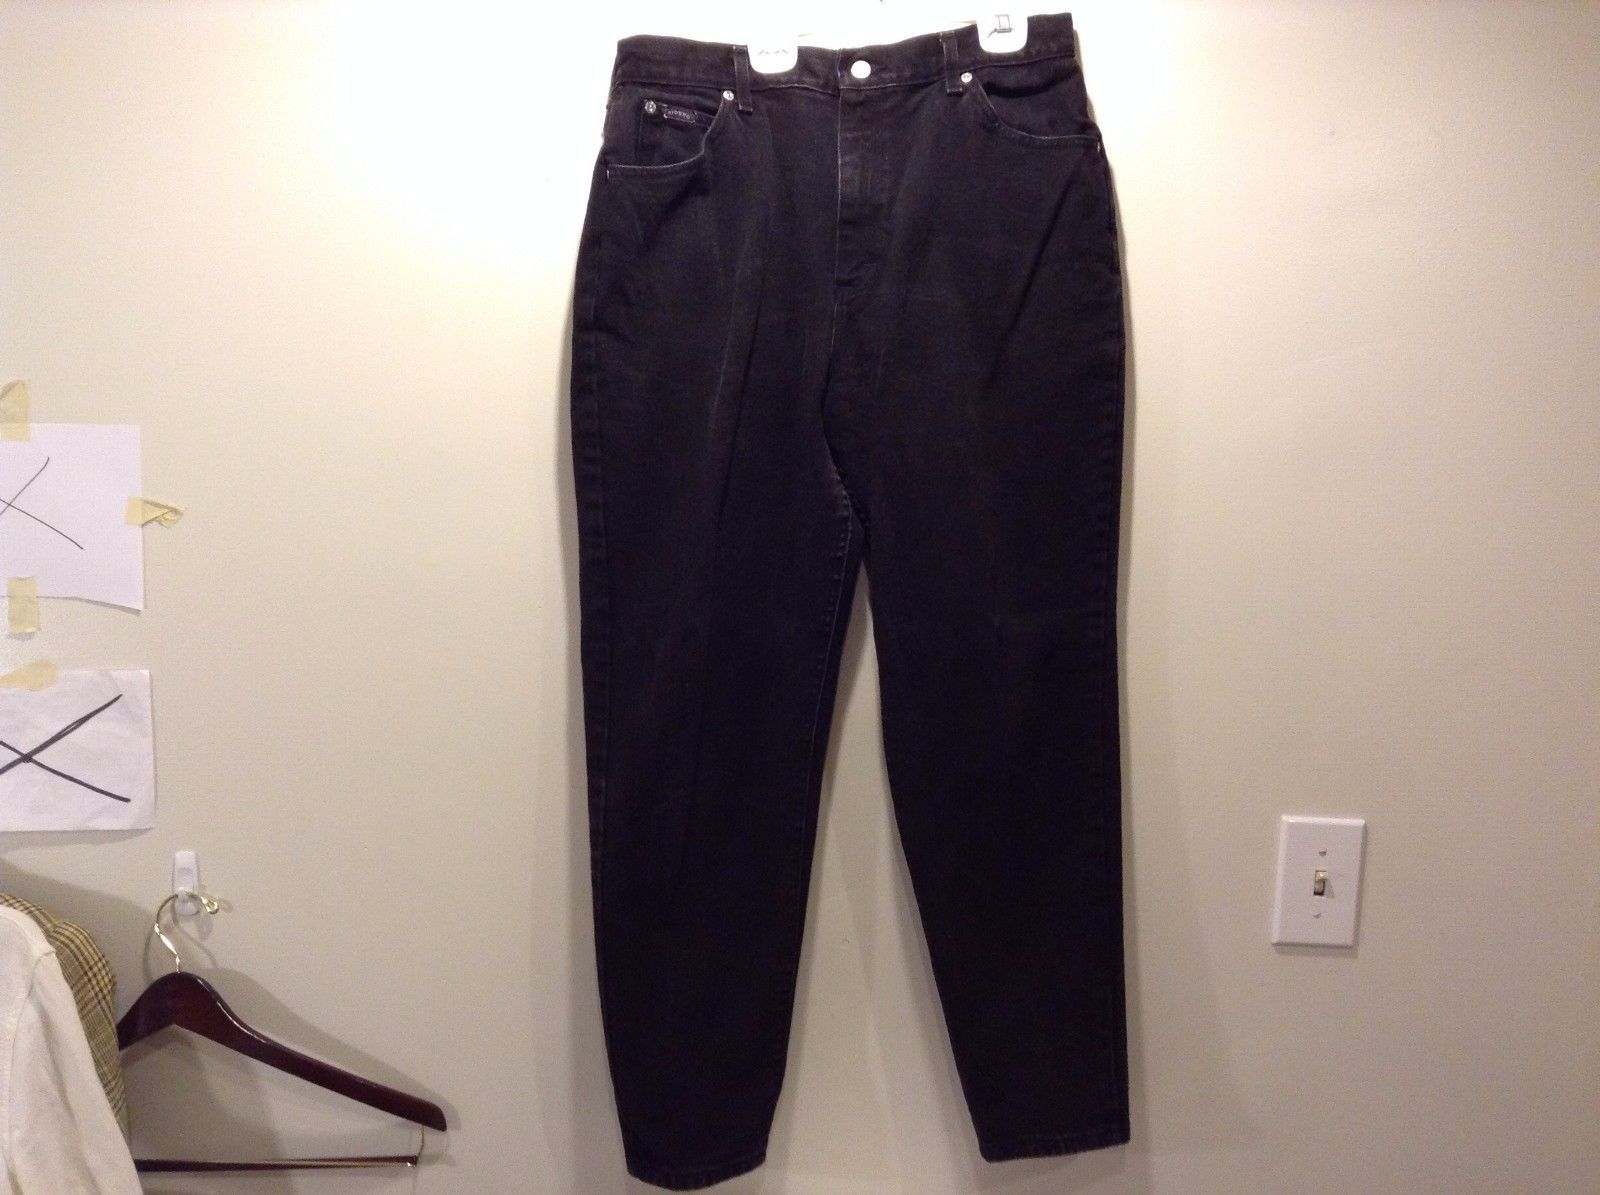 Used Good Condition Black Denim Riders Jeans Size 16 Petite